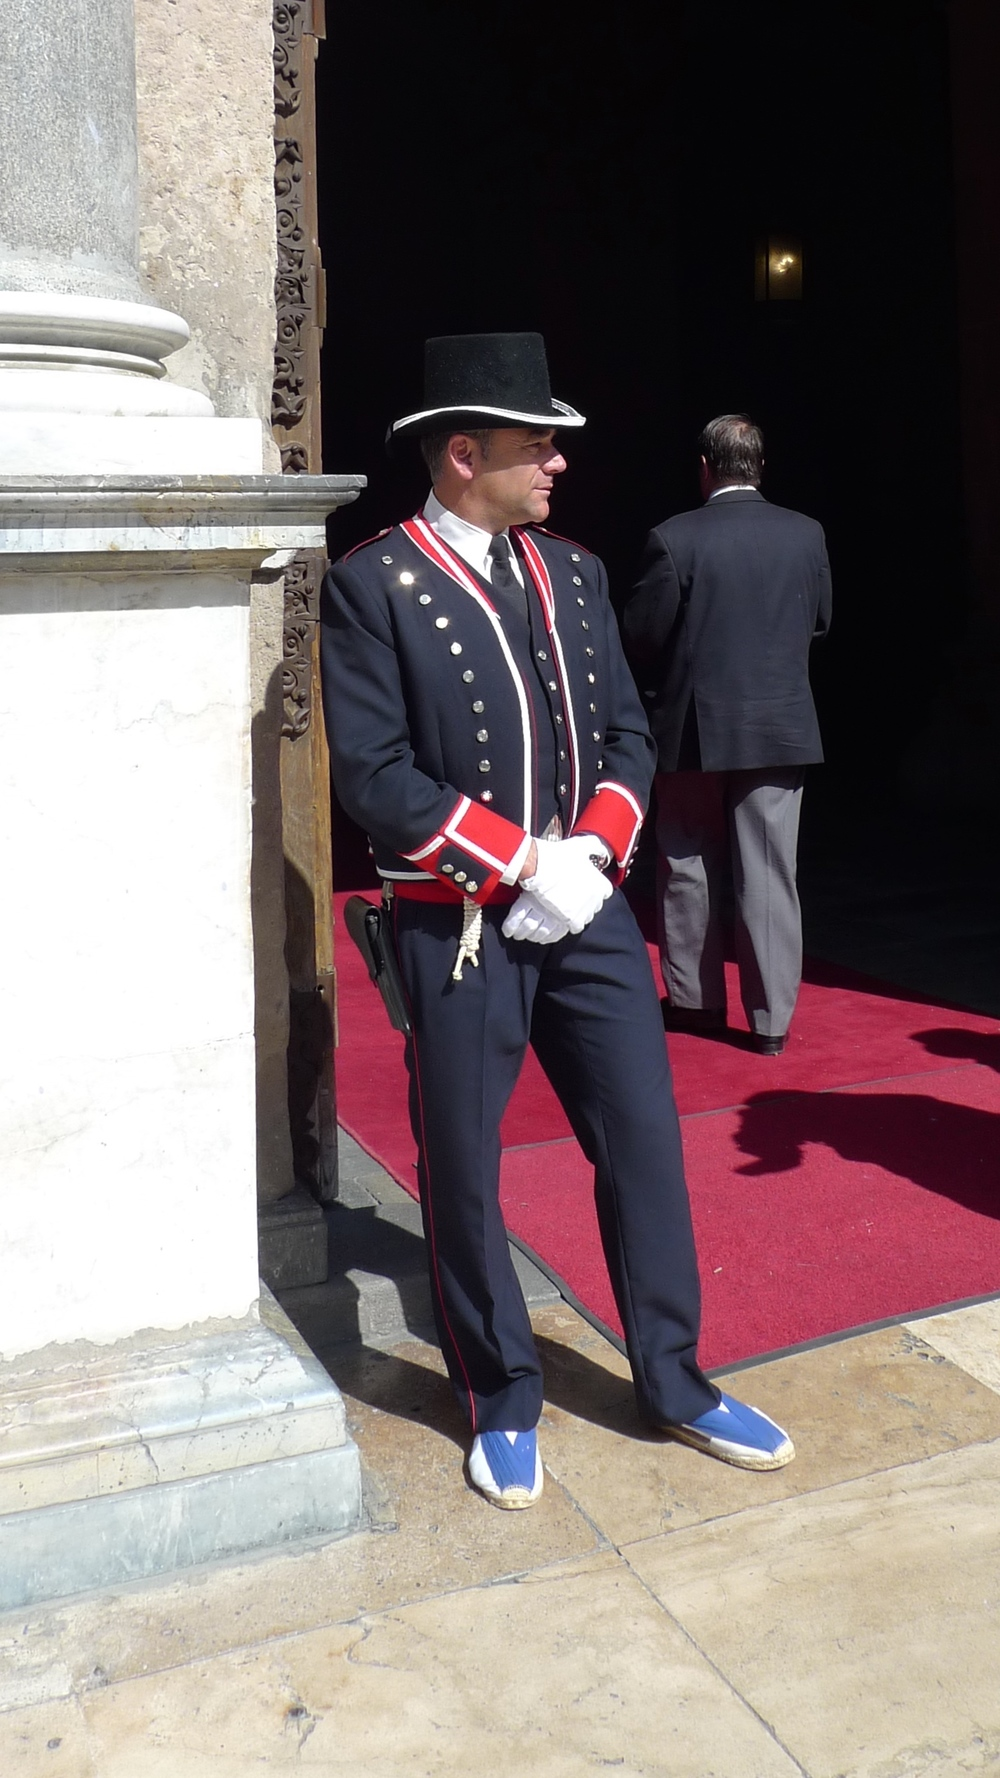 Guard at Palau de la Generalitat